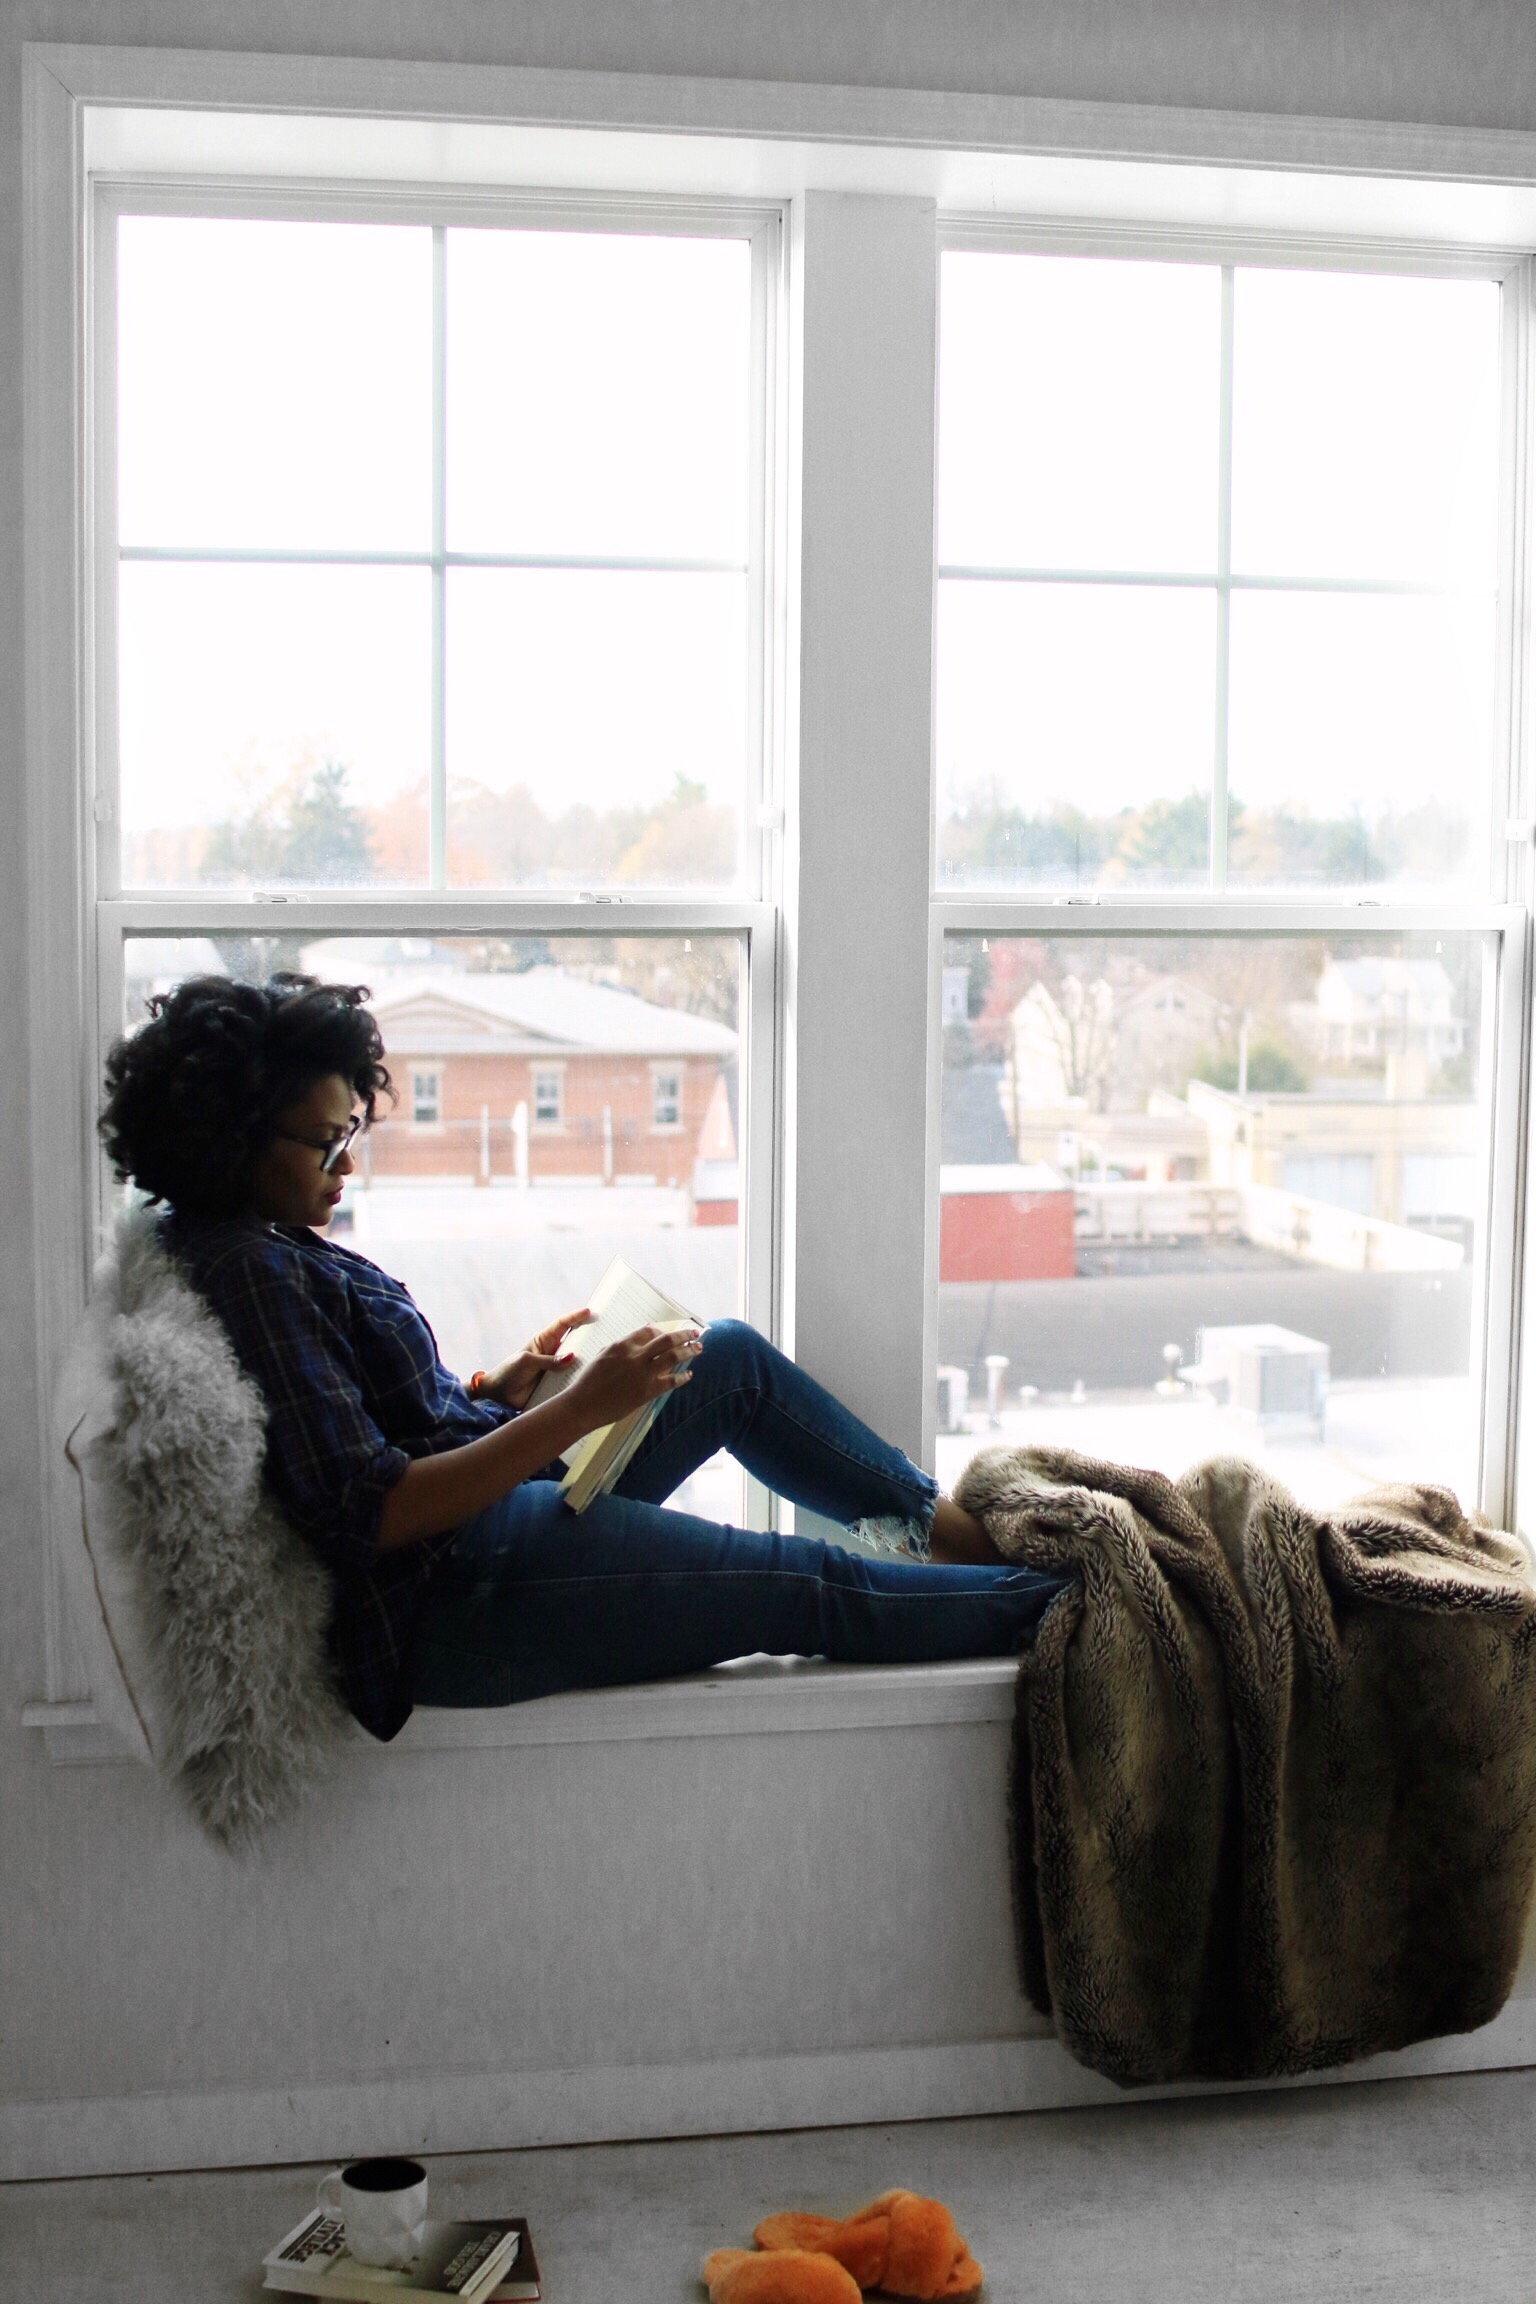 selfcare + reading